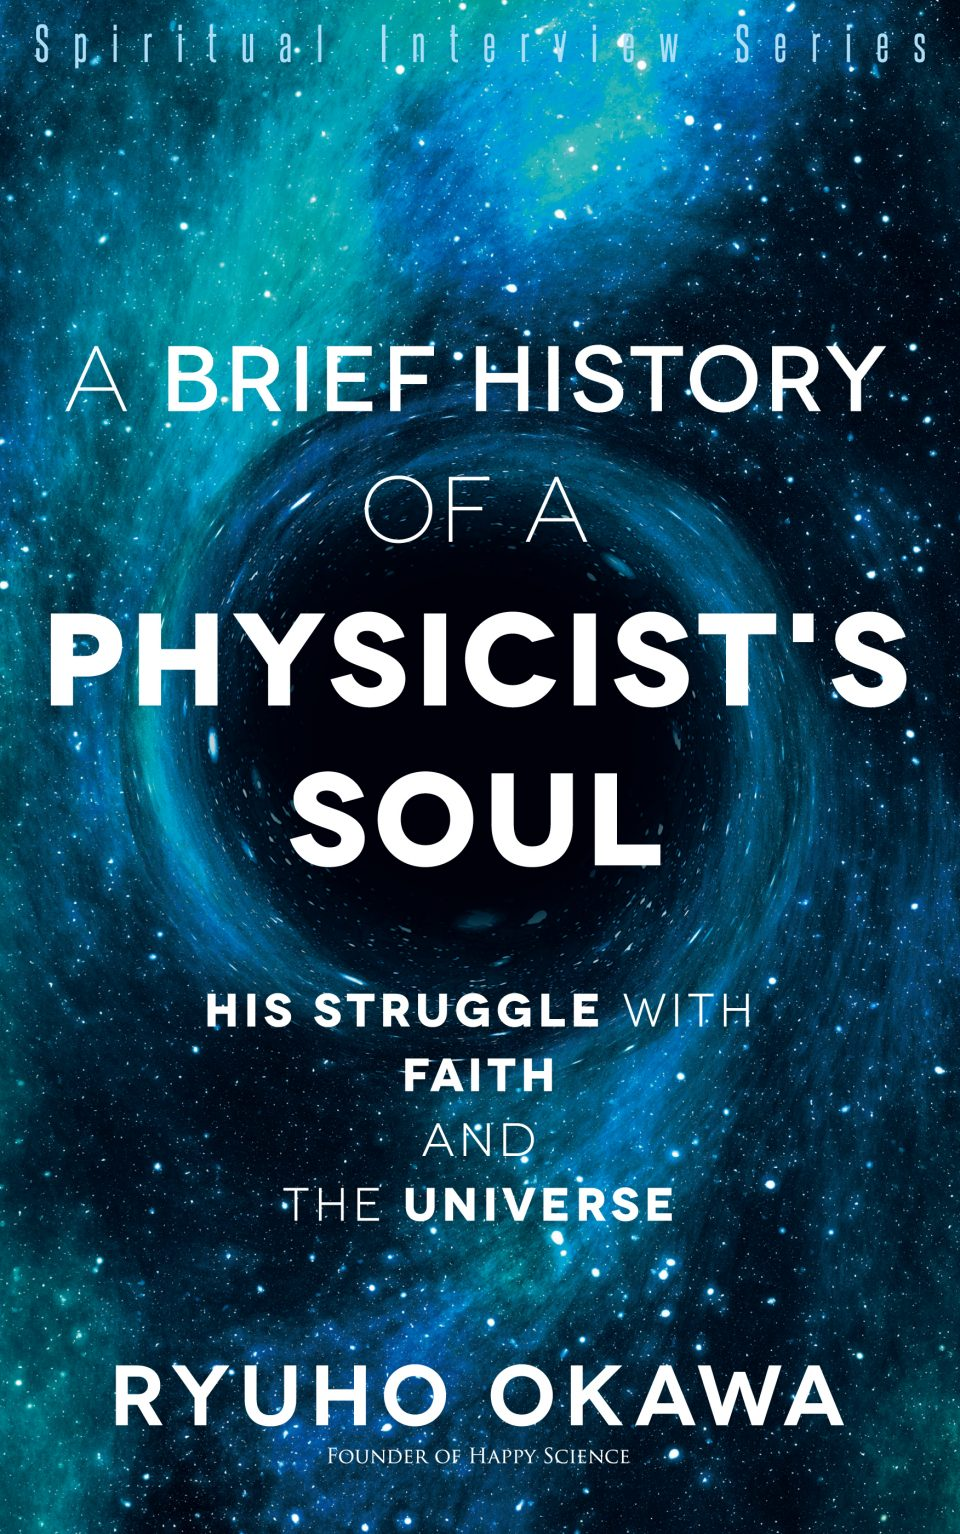 A Brief History of a Physicist's Soul: His Struggle with Faith and the Universe (Spiritual Interview Series) is out now!